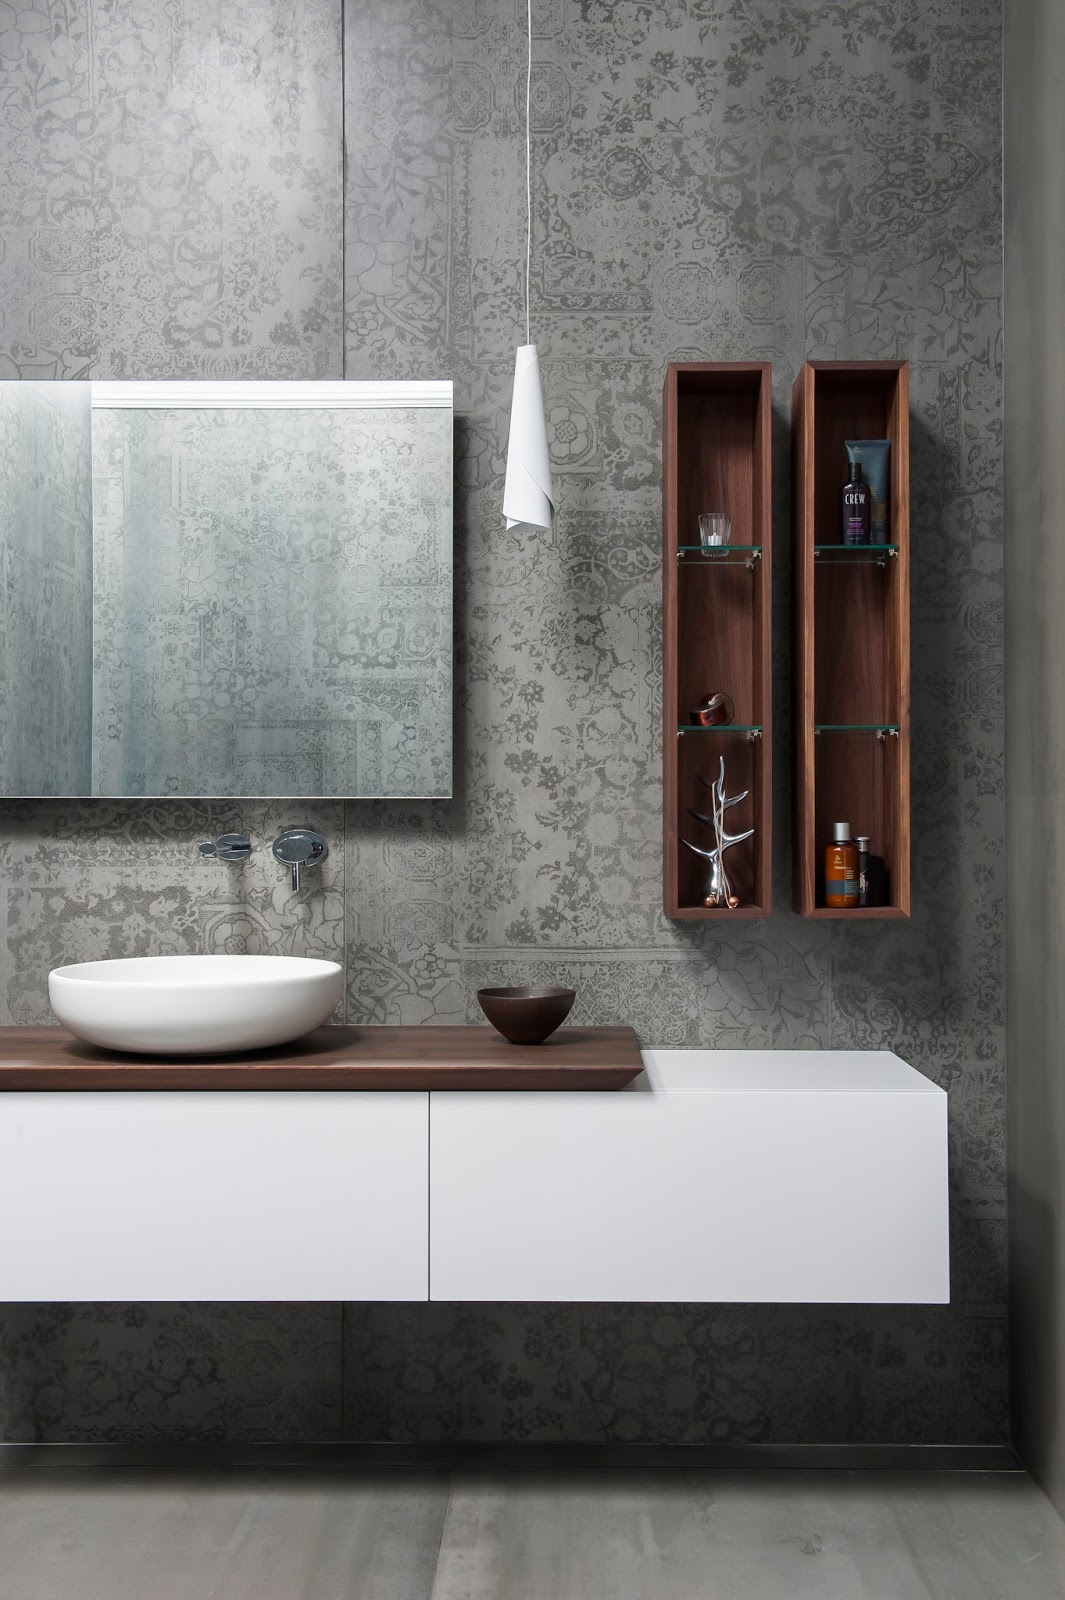 Minosa: Main Bathroom meets Powder Room with stunning result